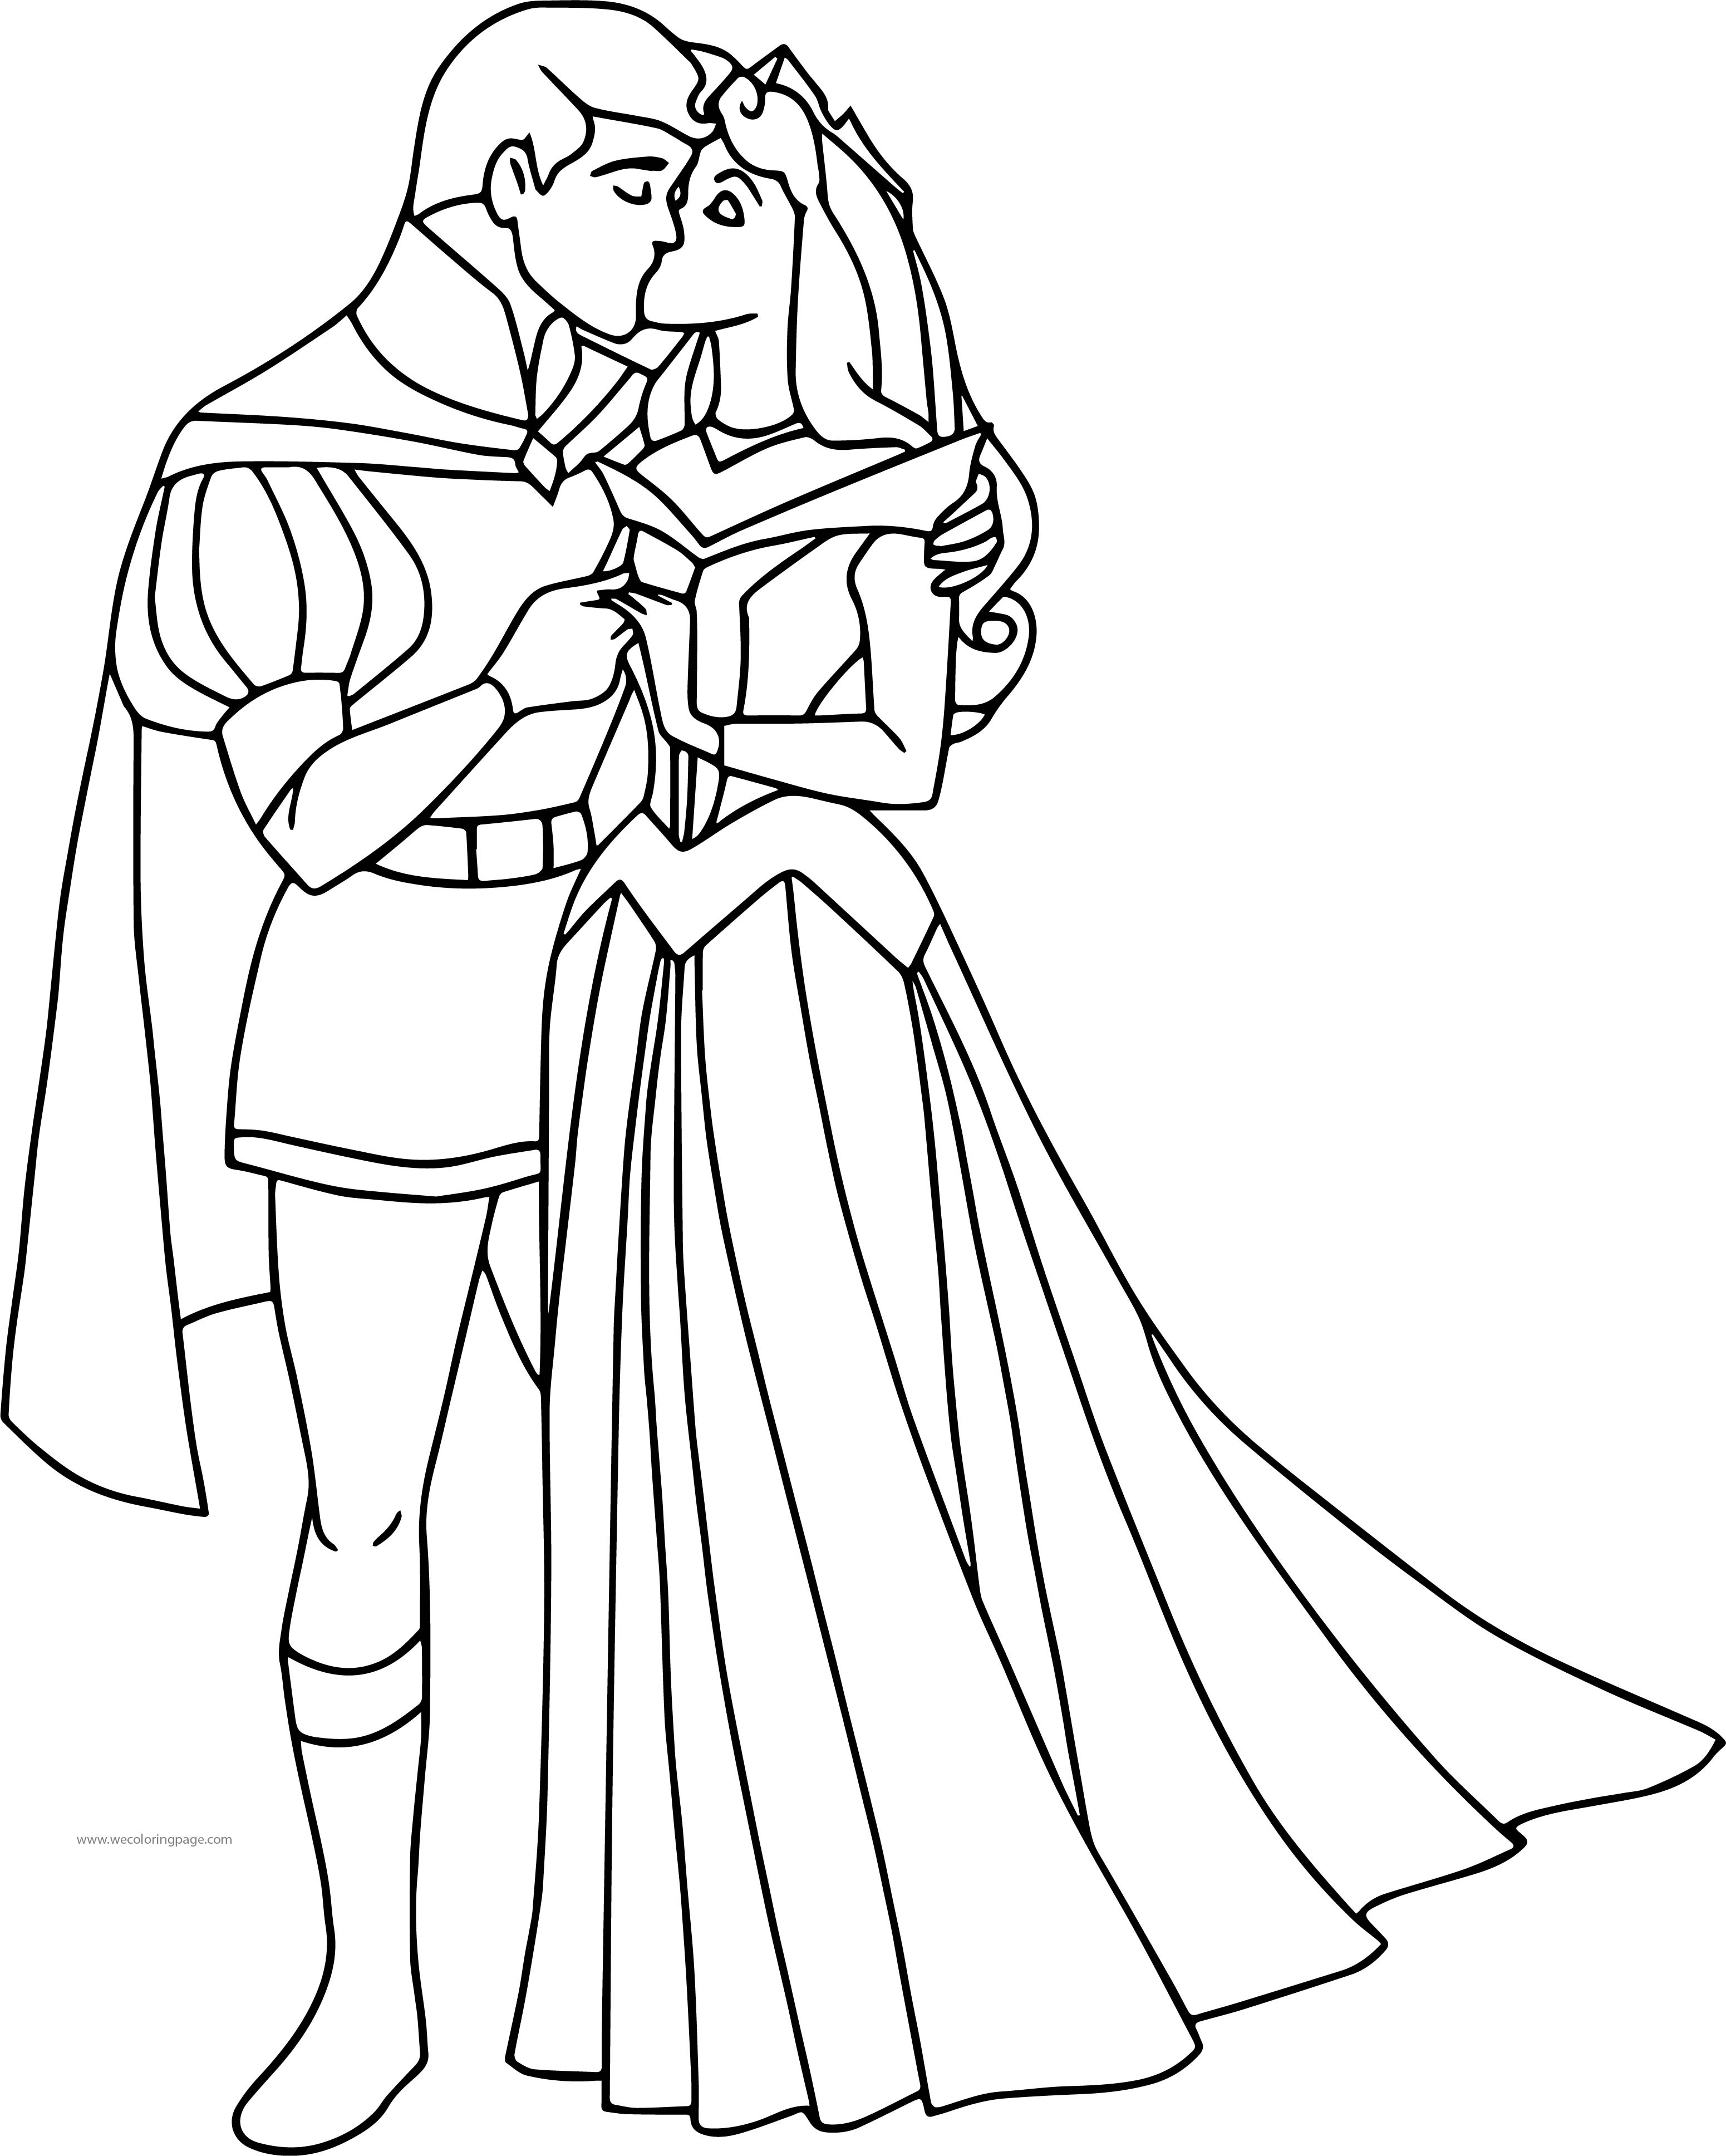 3101x3873 Disney Aurora And Phillip Kiss Coloring Pages Wecoloringpage